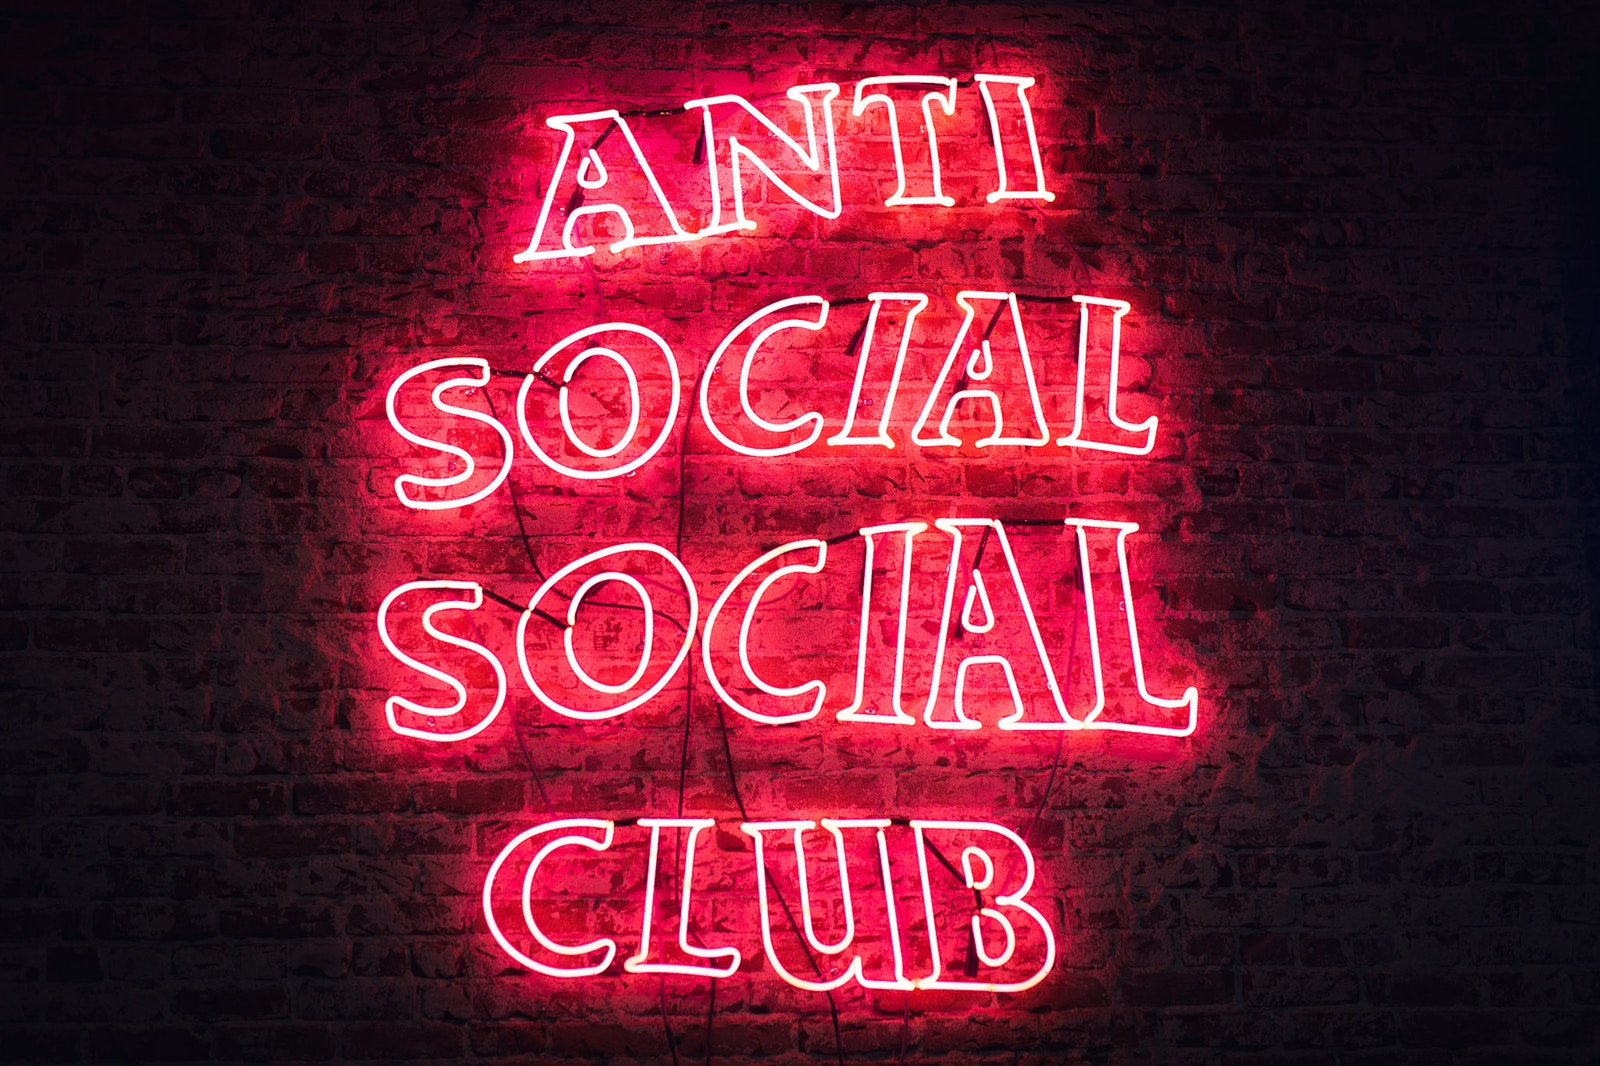 Anti Social Social Club Owes Their Customers Over 1000 Pieces Of Merch